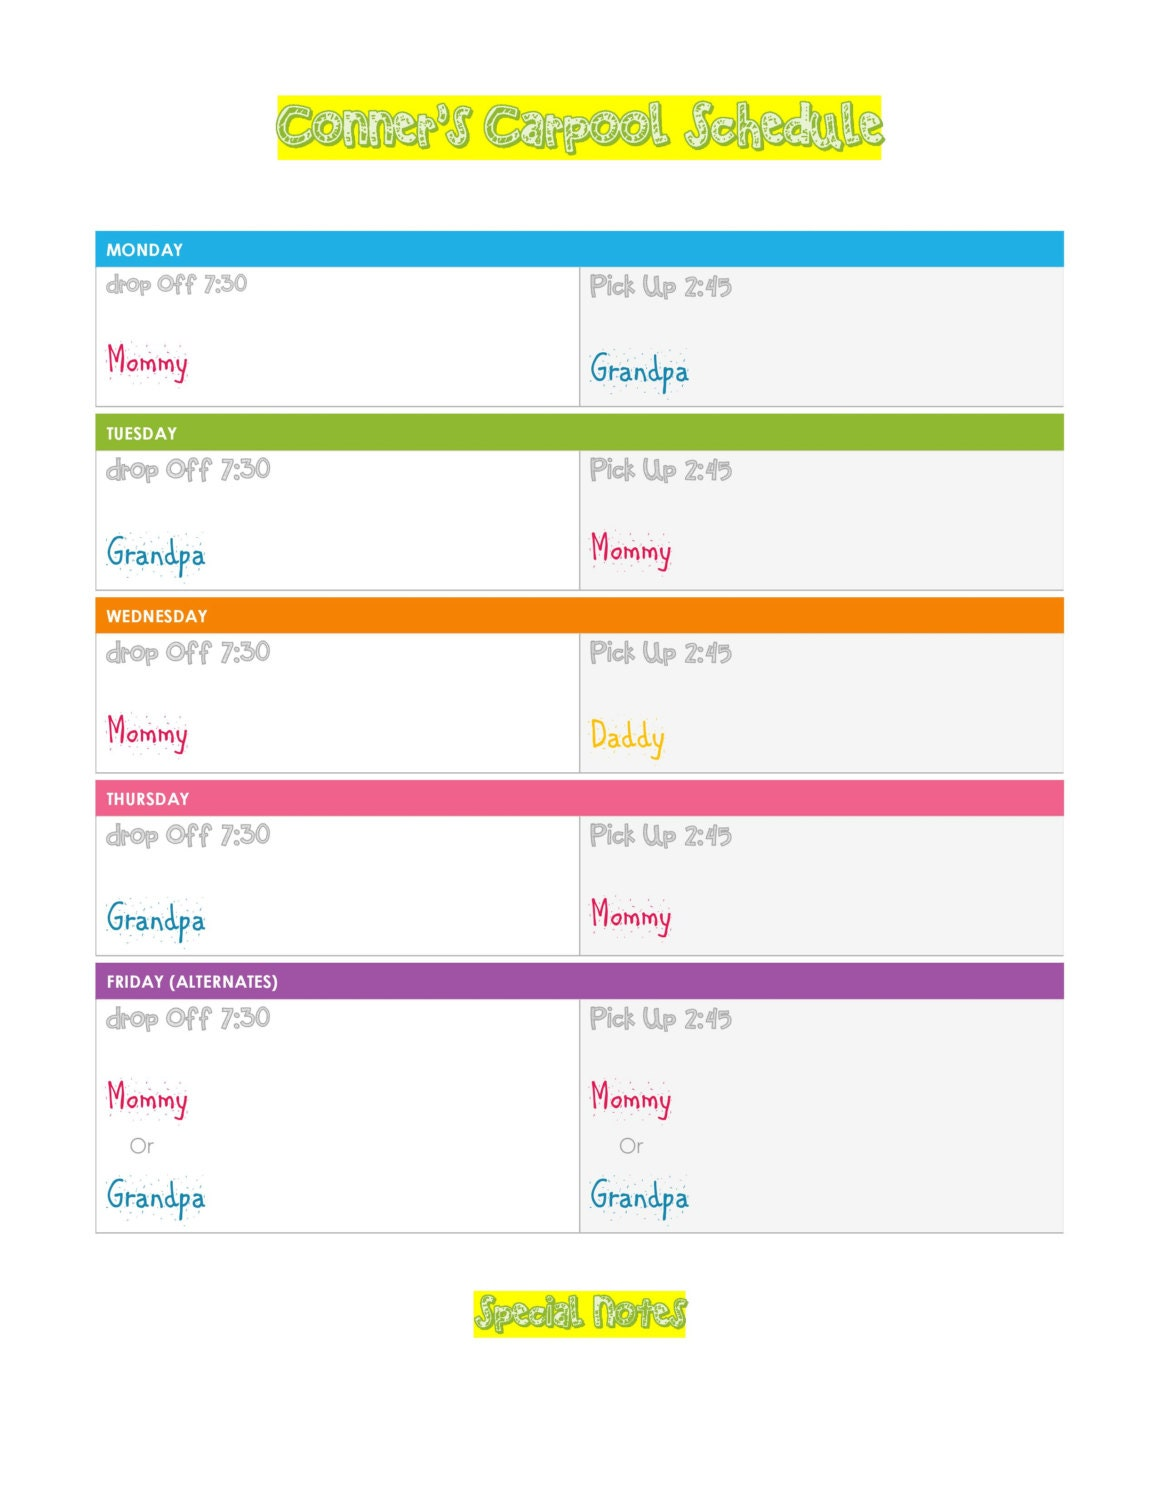 Carpool schedule by clmtemplates on etsy for Carpool calendar template